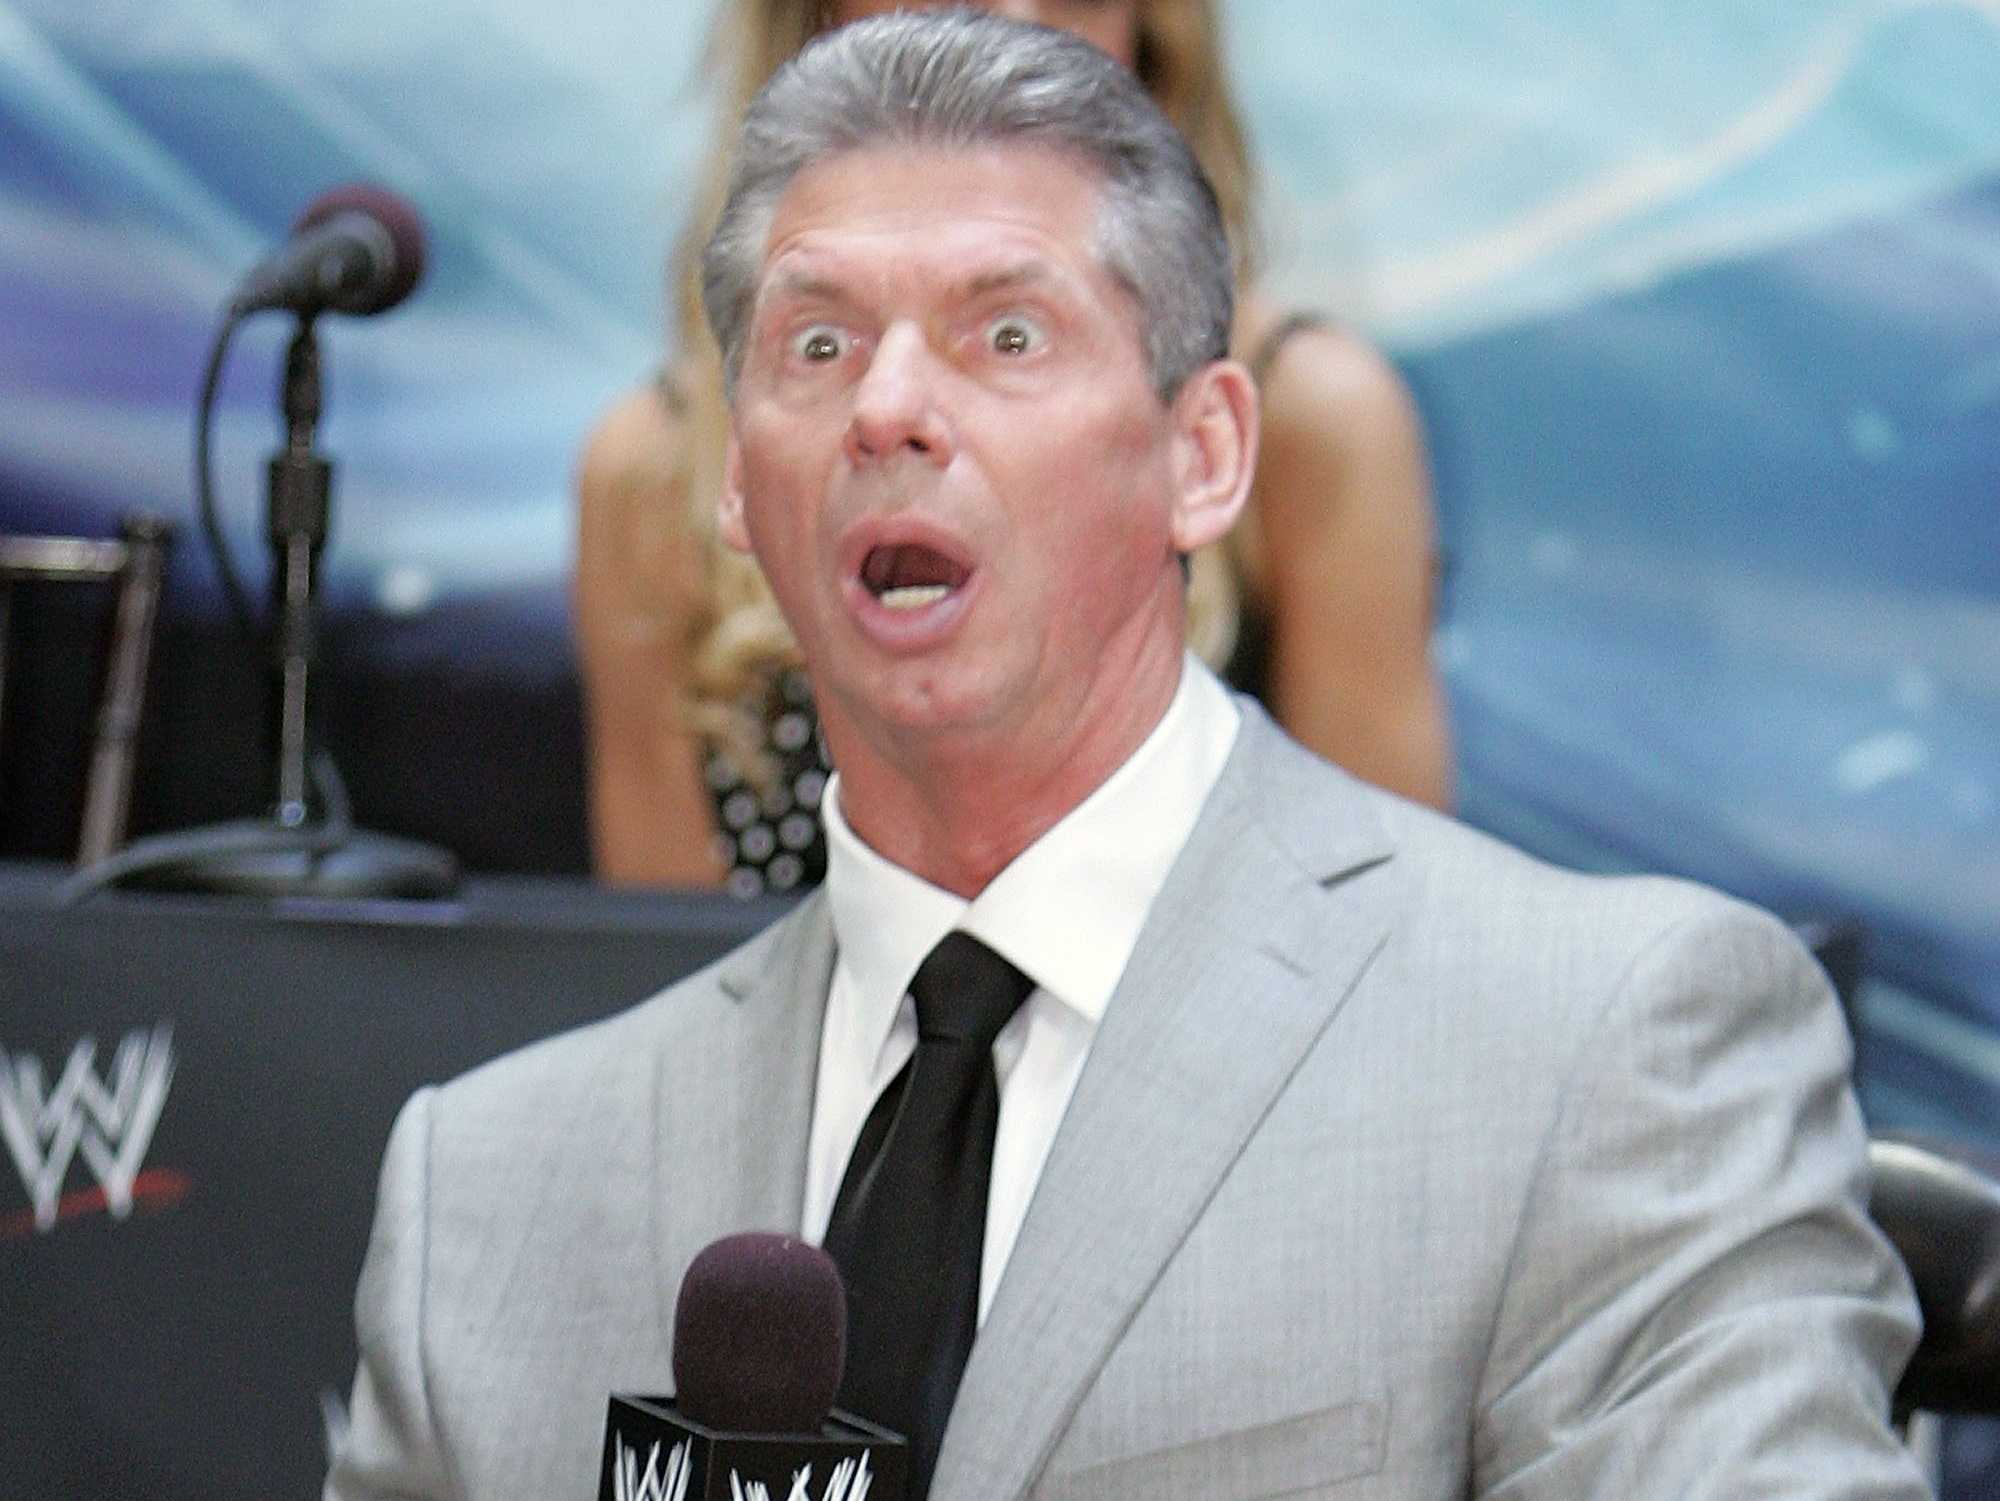 Vince Mcmahon >> Vince Mcmahon Starting To Wonder If Wrestling Might Be Rigged